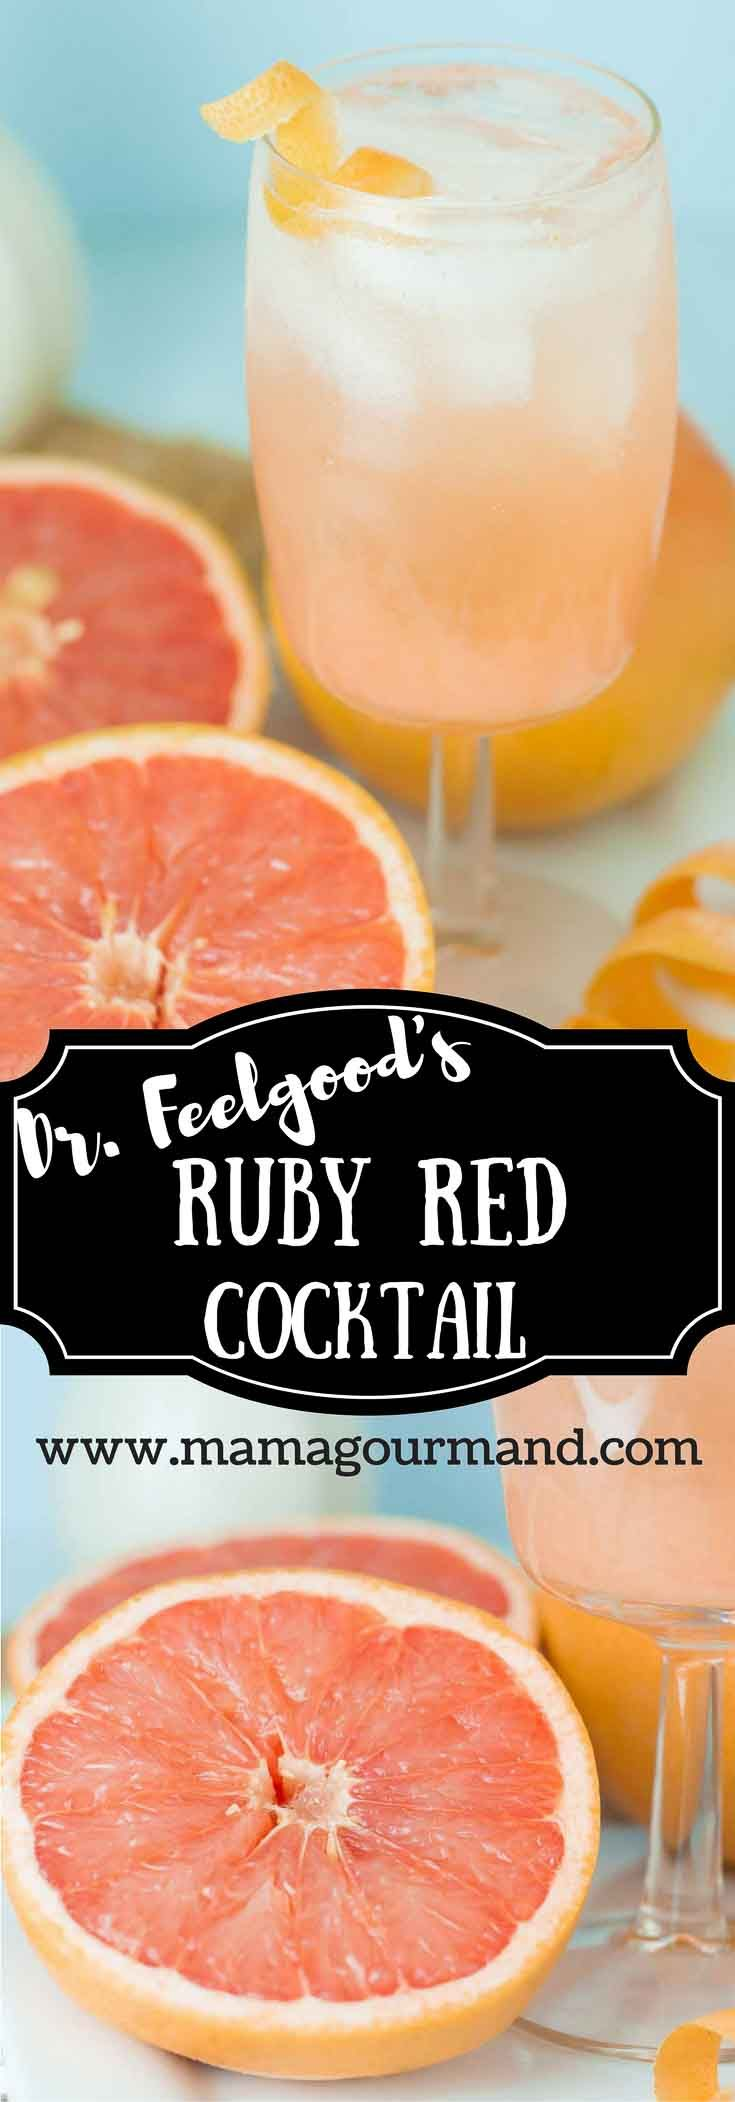 Dr. Feelgood's Grapefruit Cocktail combines fresh ruby red grapefruit juice, tangy grapefruit vodka, and sparkling ginger ale. http://www.mamagourmand.com via @mamagourmand